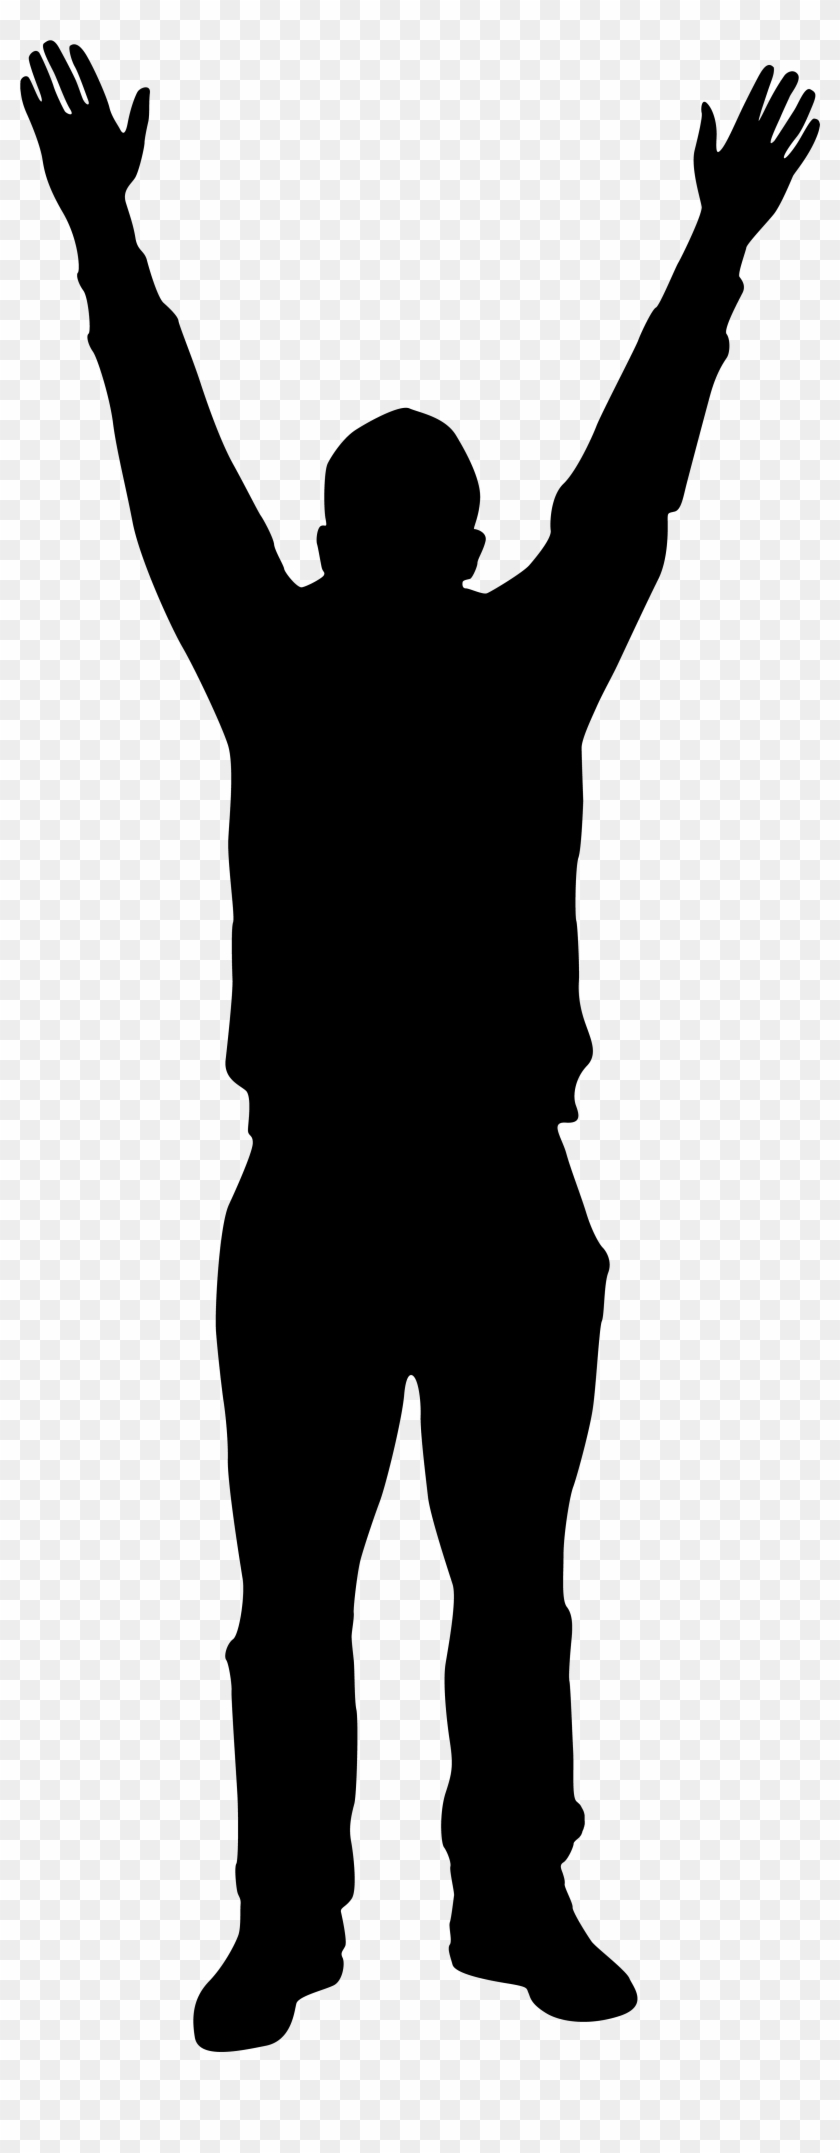 Man With Hands Up Silhouette Png Clip Art Imageu200b - Man Standing Silhouette Png #63974